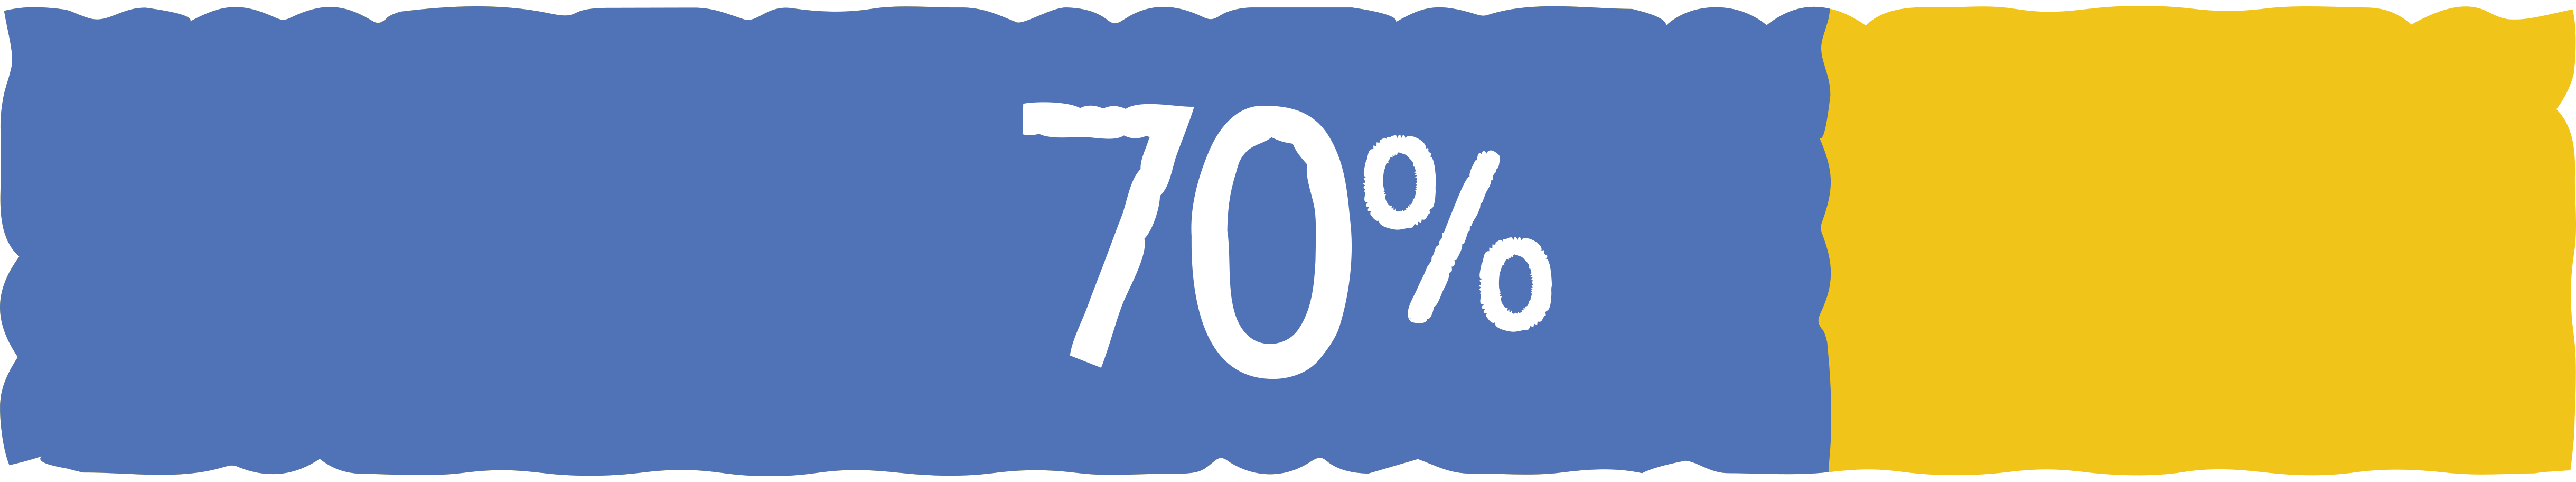 style progress bar Vector images in PNG and SVG | Icons8 Illustrations